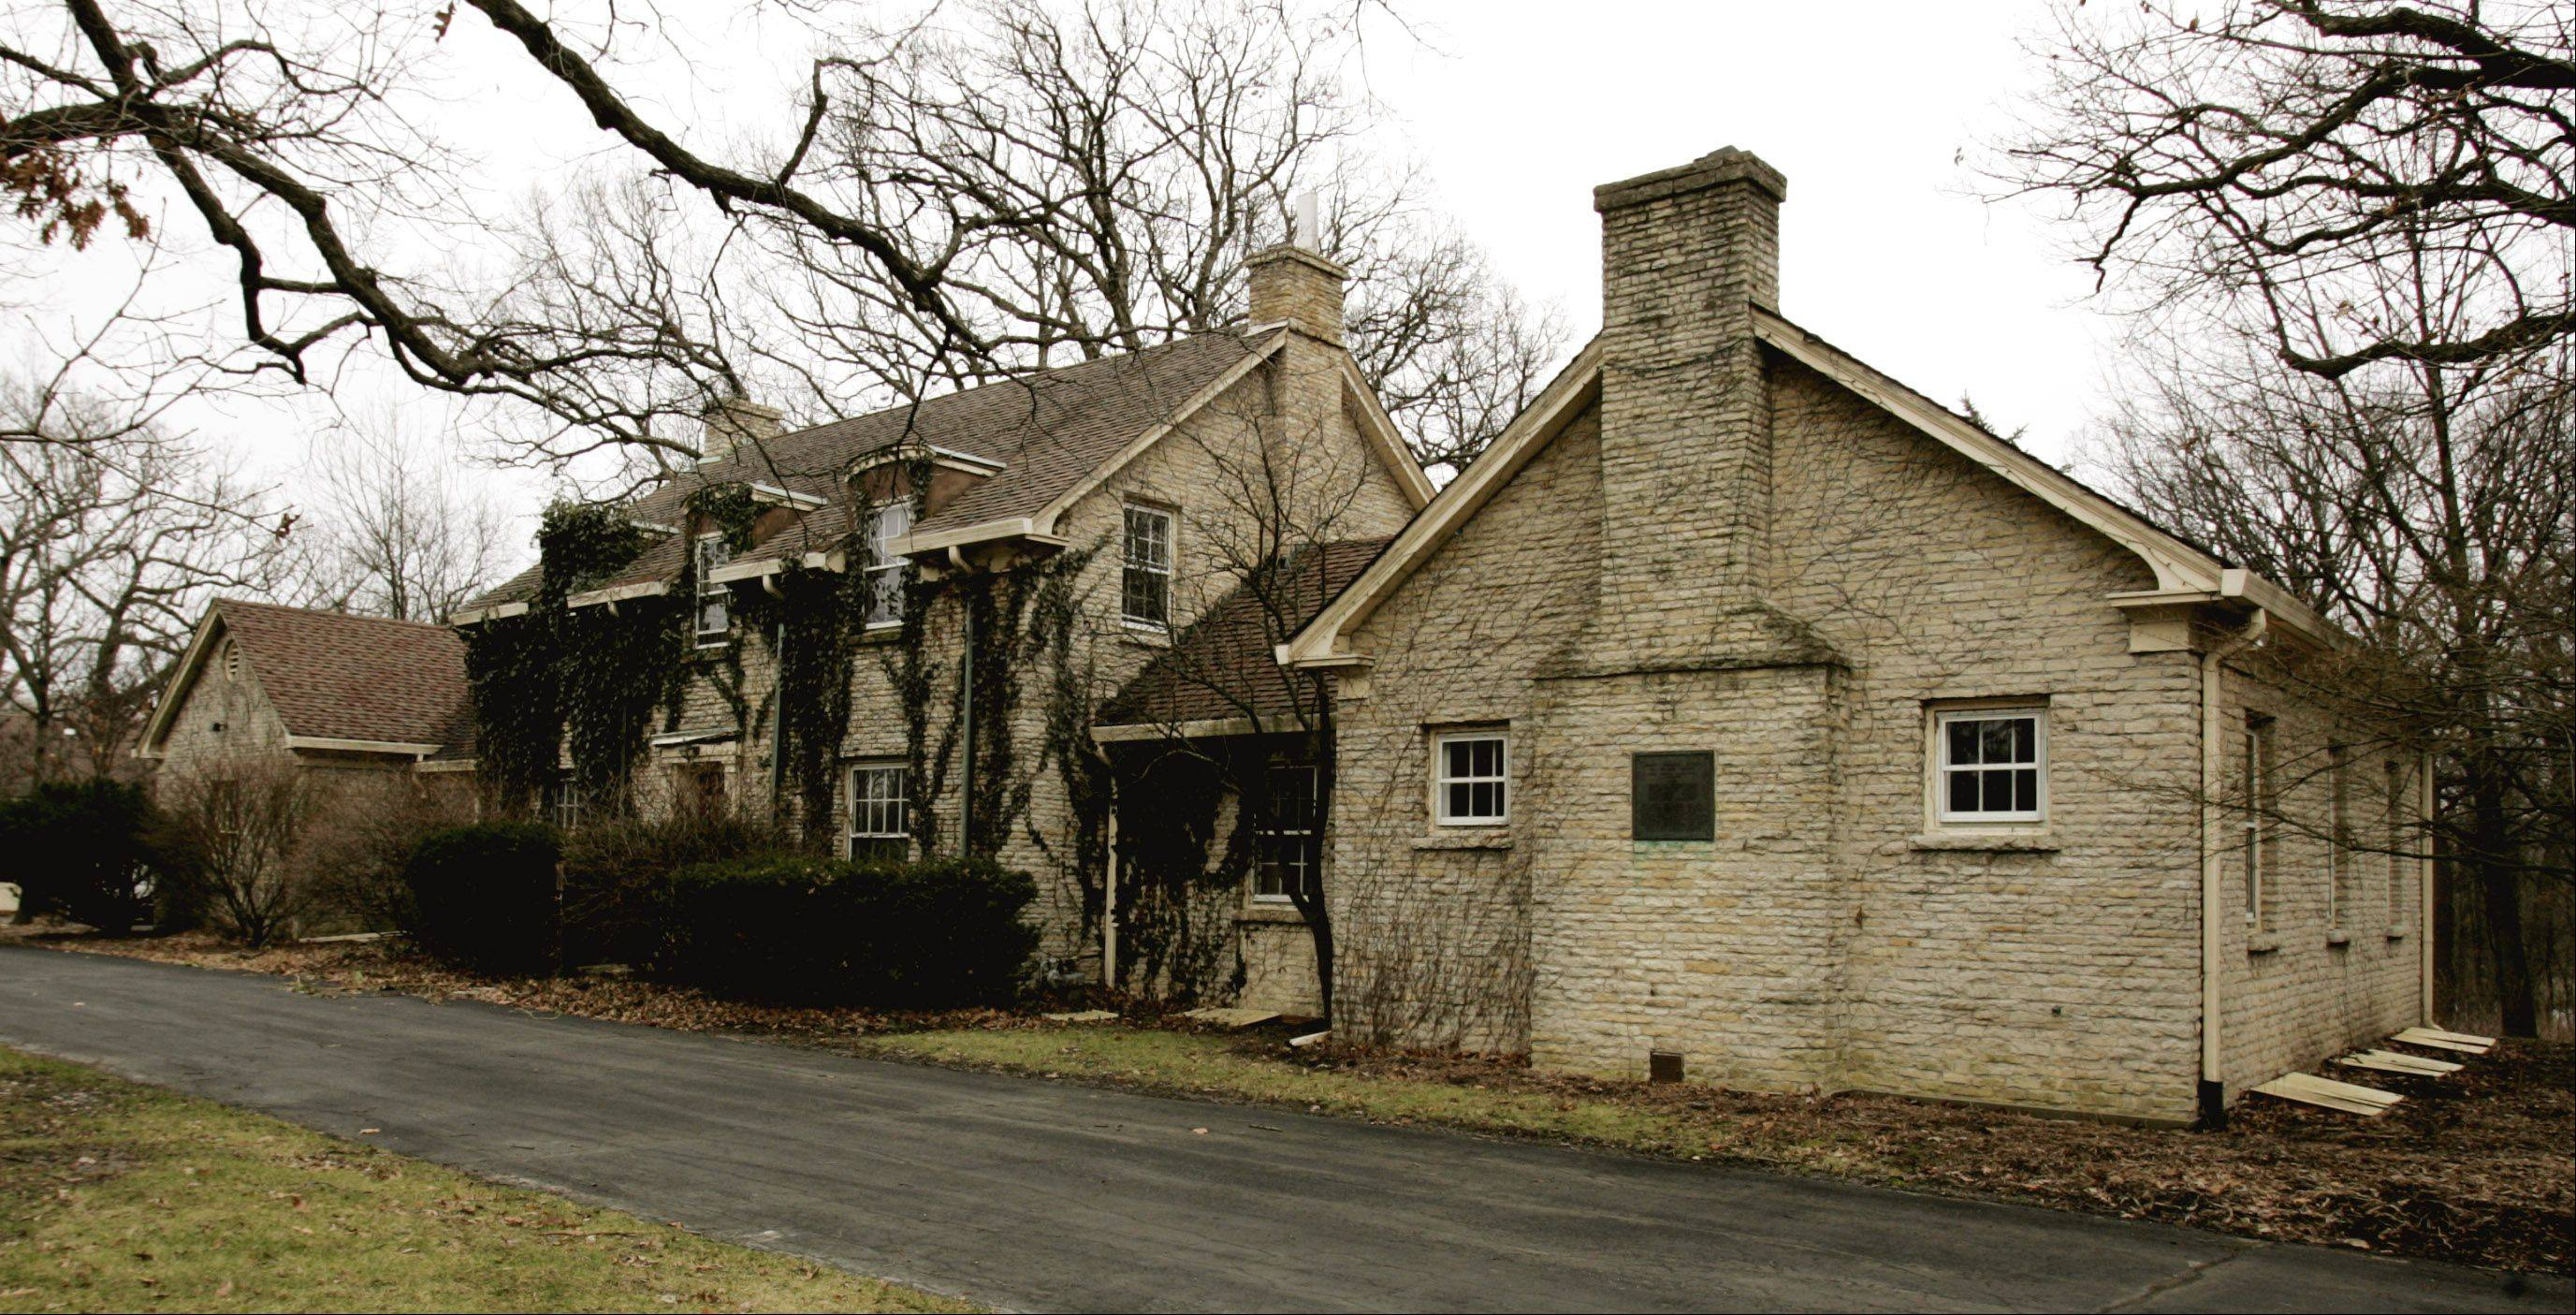 The DuPage County Forest Preserve District is poised to spend about $50,000 to determine the viability of the historic McKee House in Glen Ellyn.